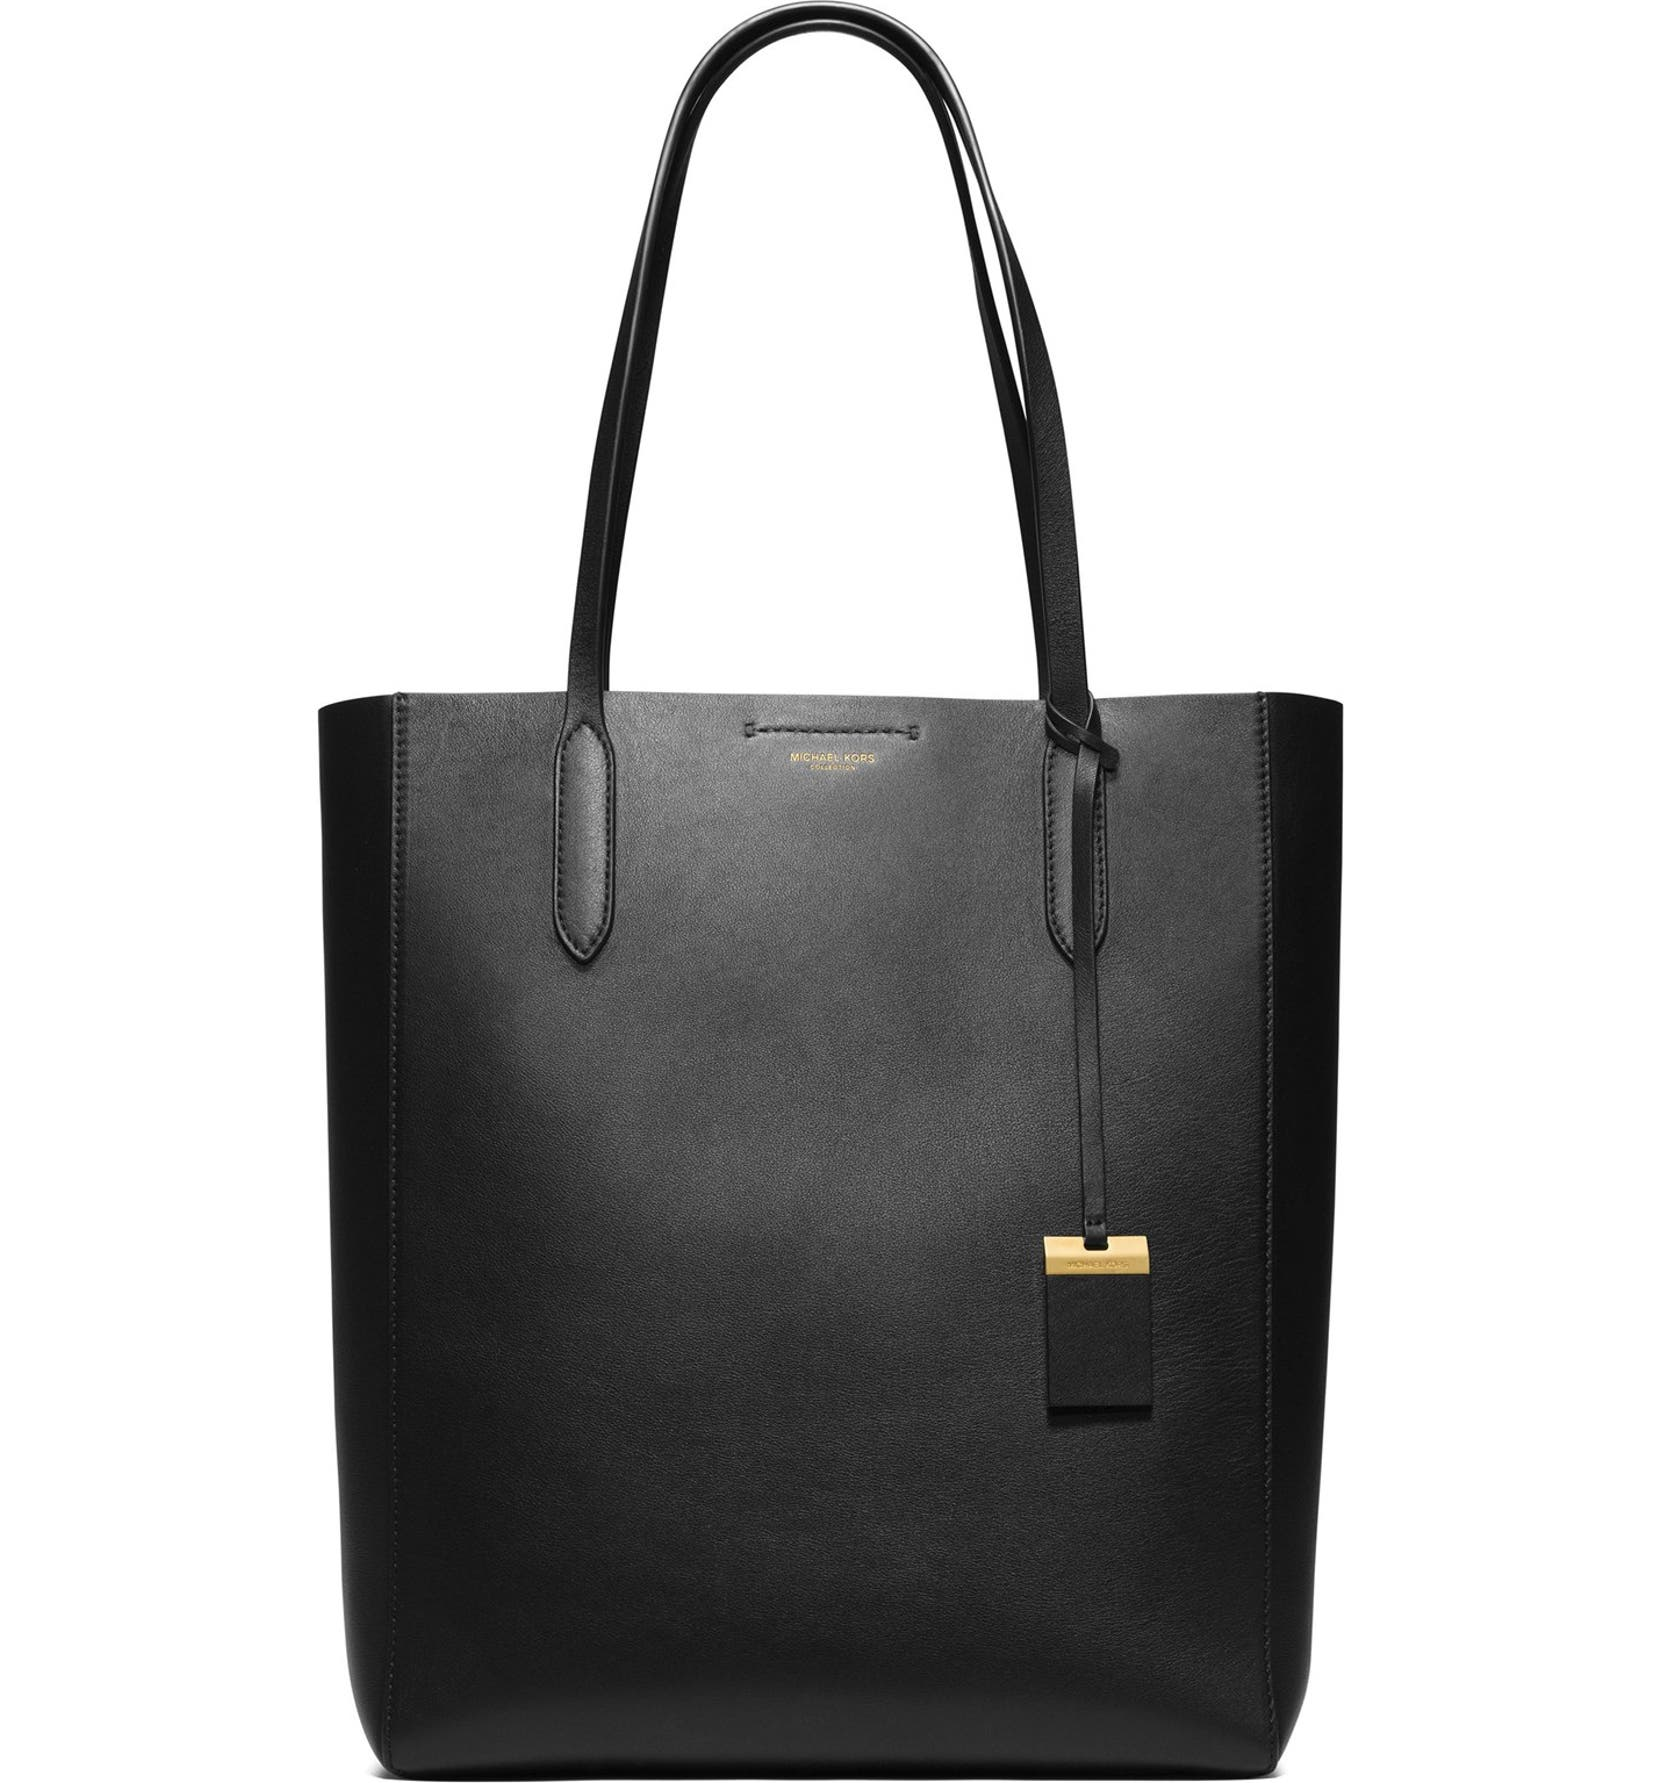 93ec02925a6a Michael Kors 'Large Eleanor - North South' Calfskin Leather Tote | Nordstrom